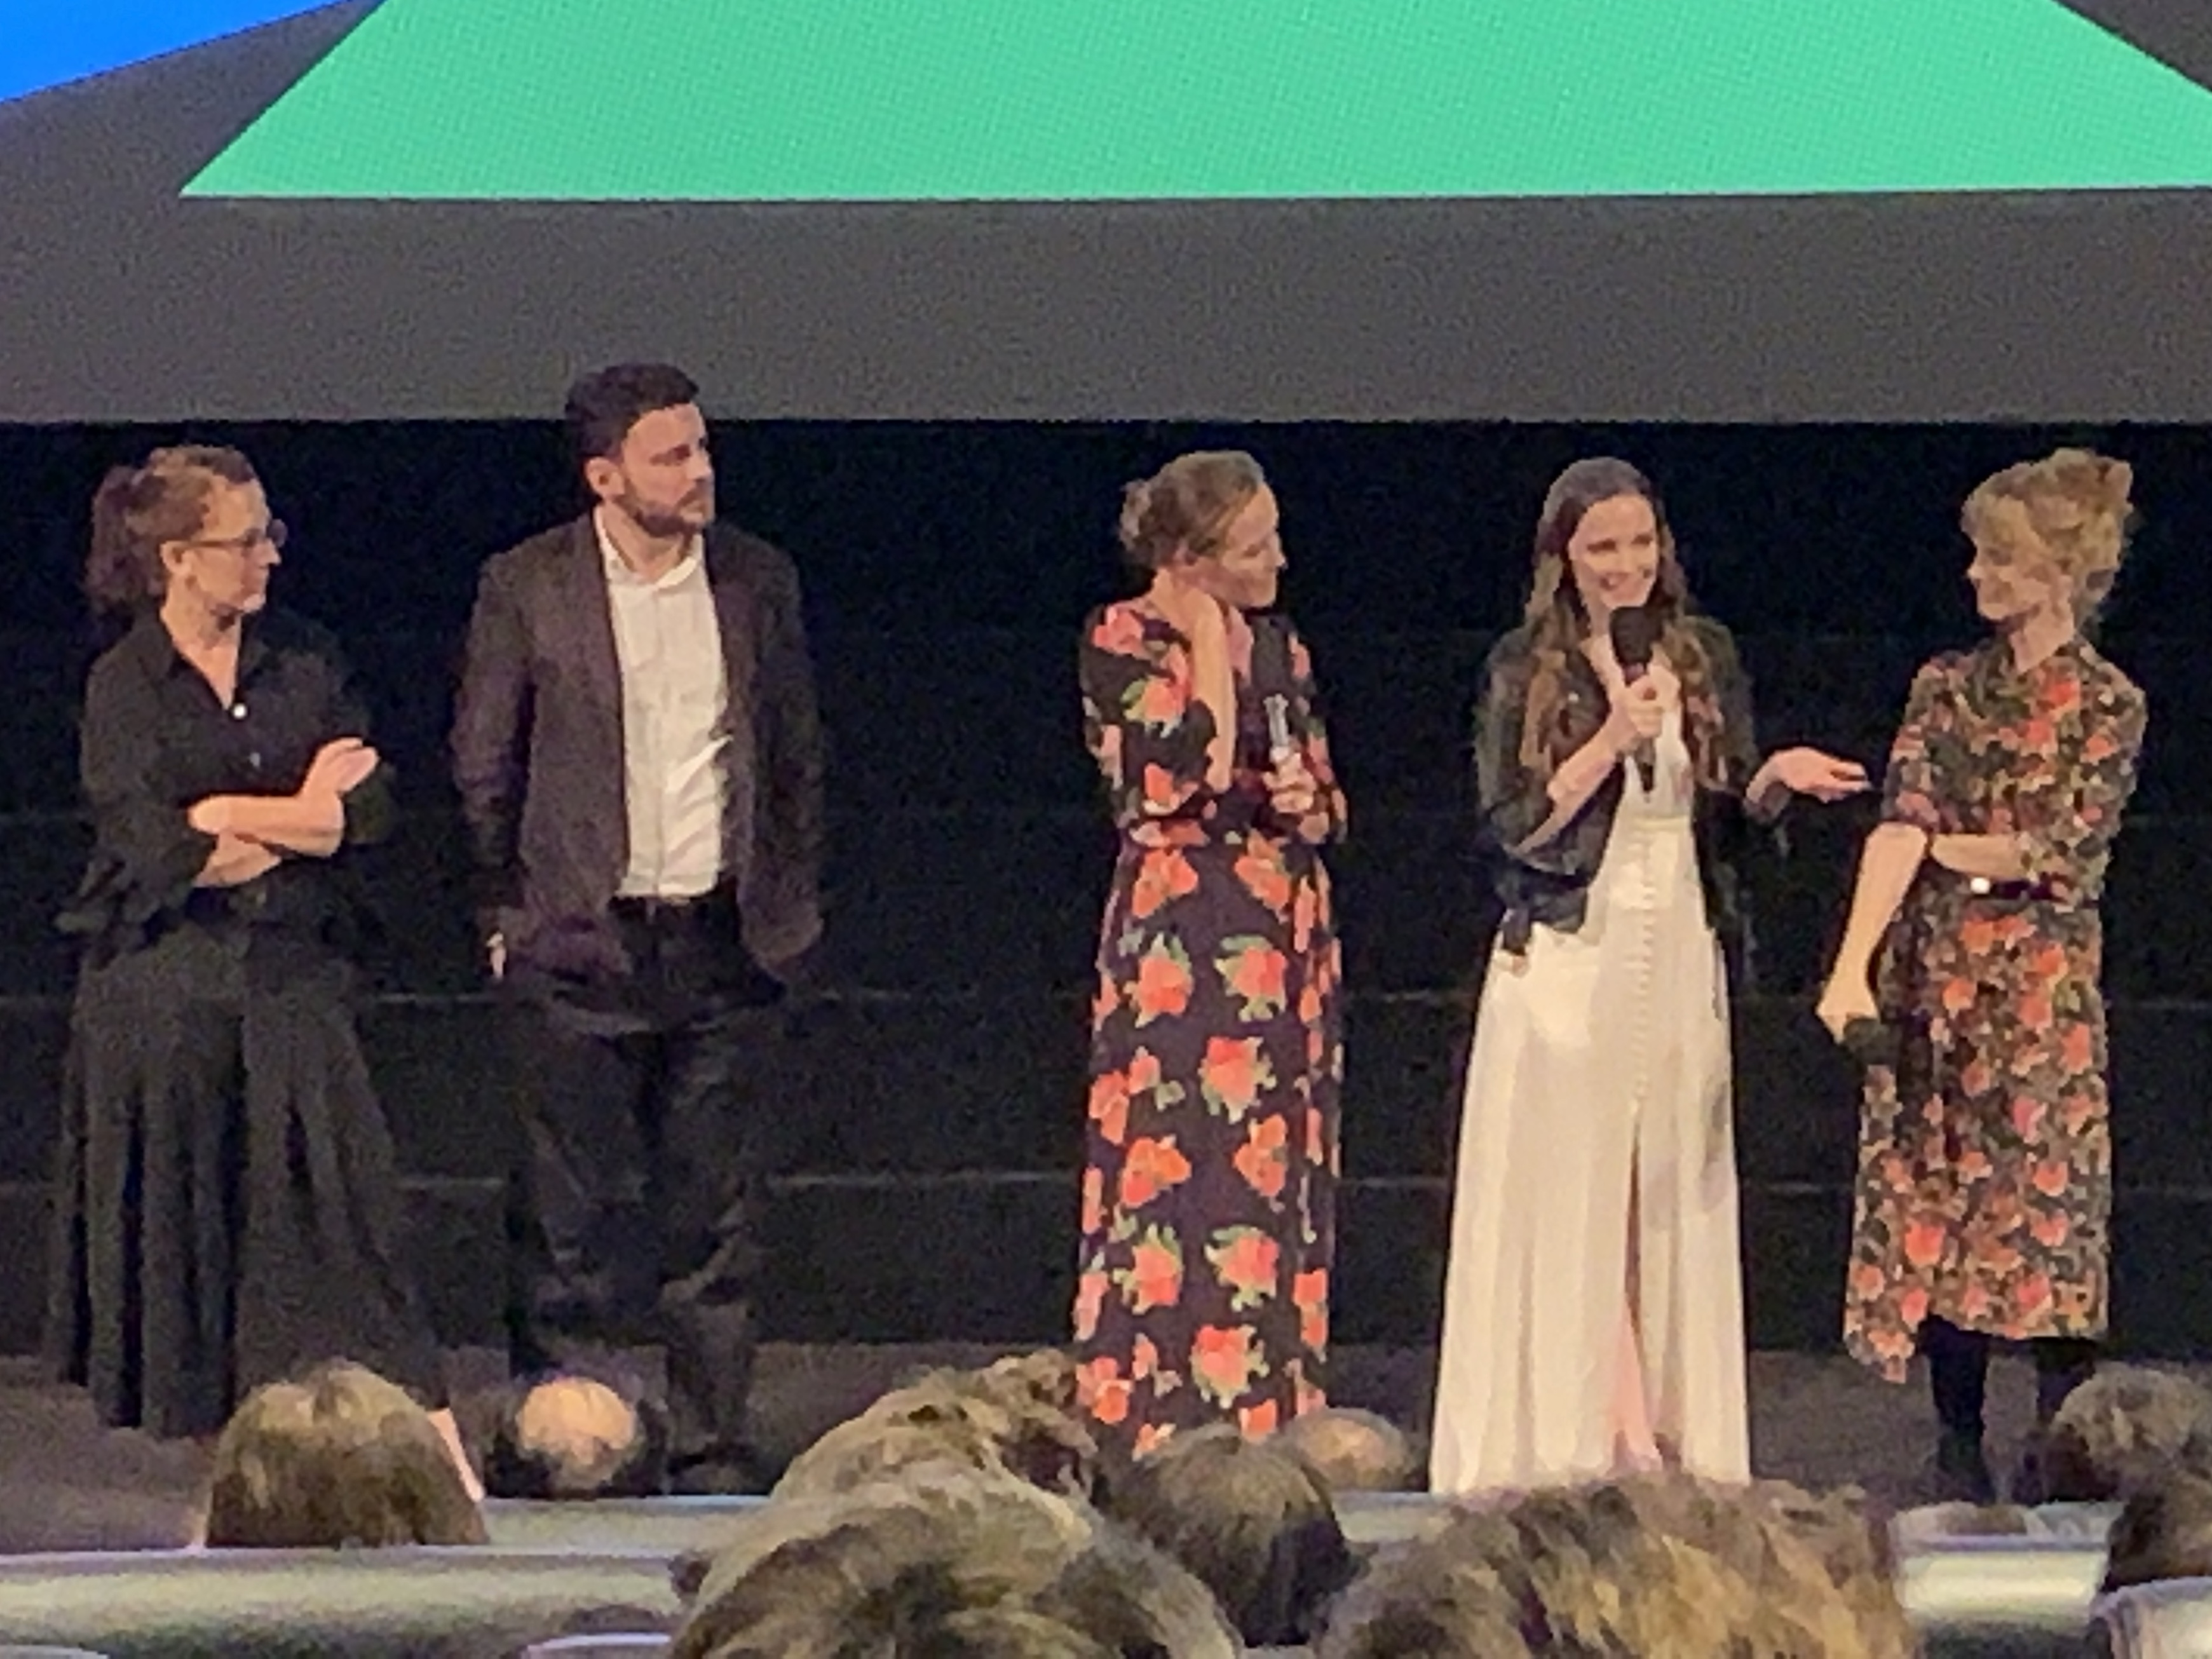 Saint Maud producers Andrea Cornwell and Oliver Kassman, actors Jennifer Ehle and Morfydd Clark and director Rose Glass at the London Film Festival on 5th October 2019